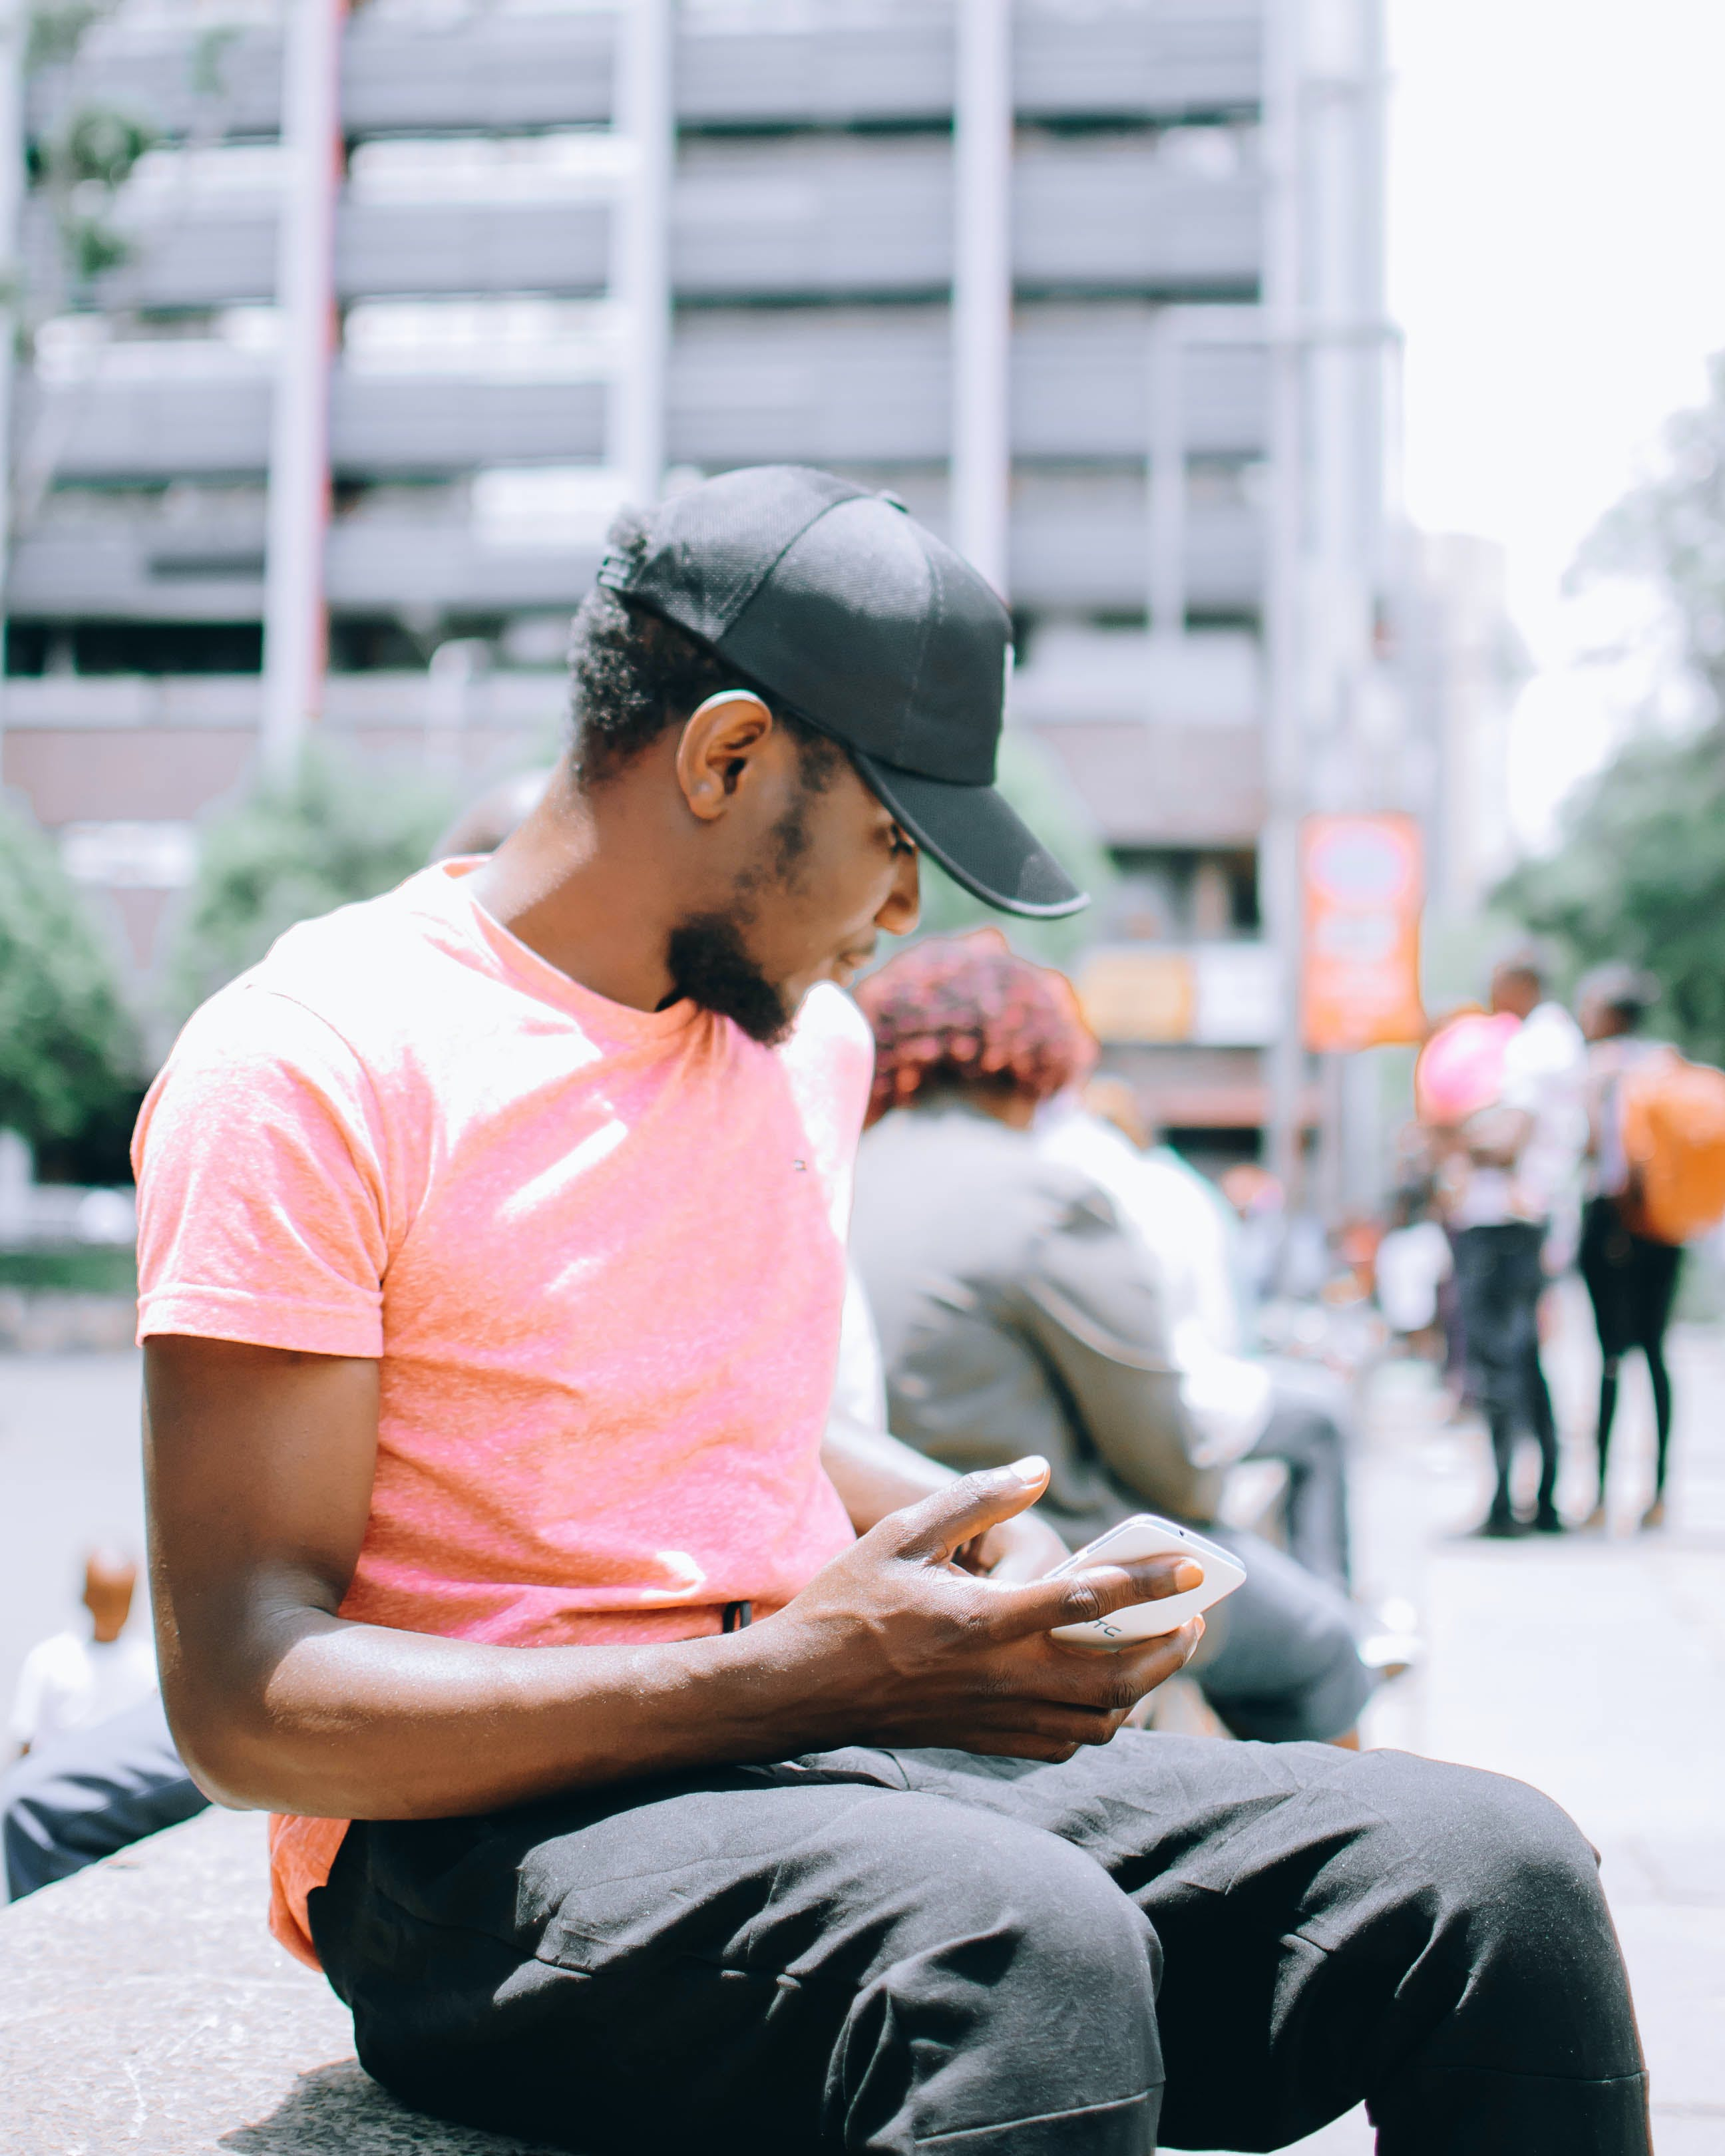 Man Sitting on Gray Bench While Using Mobile Phone